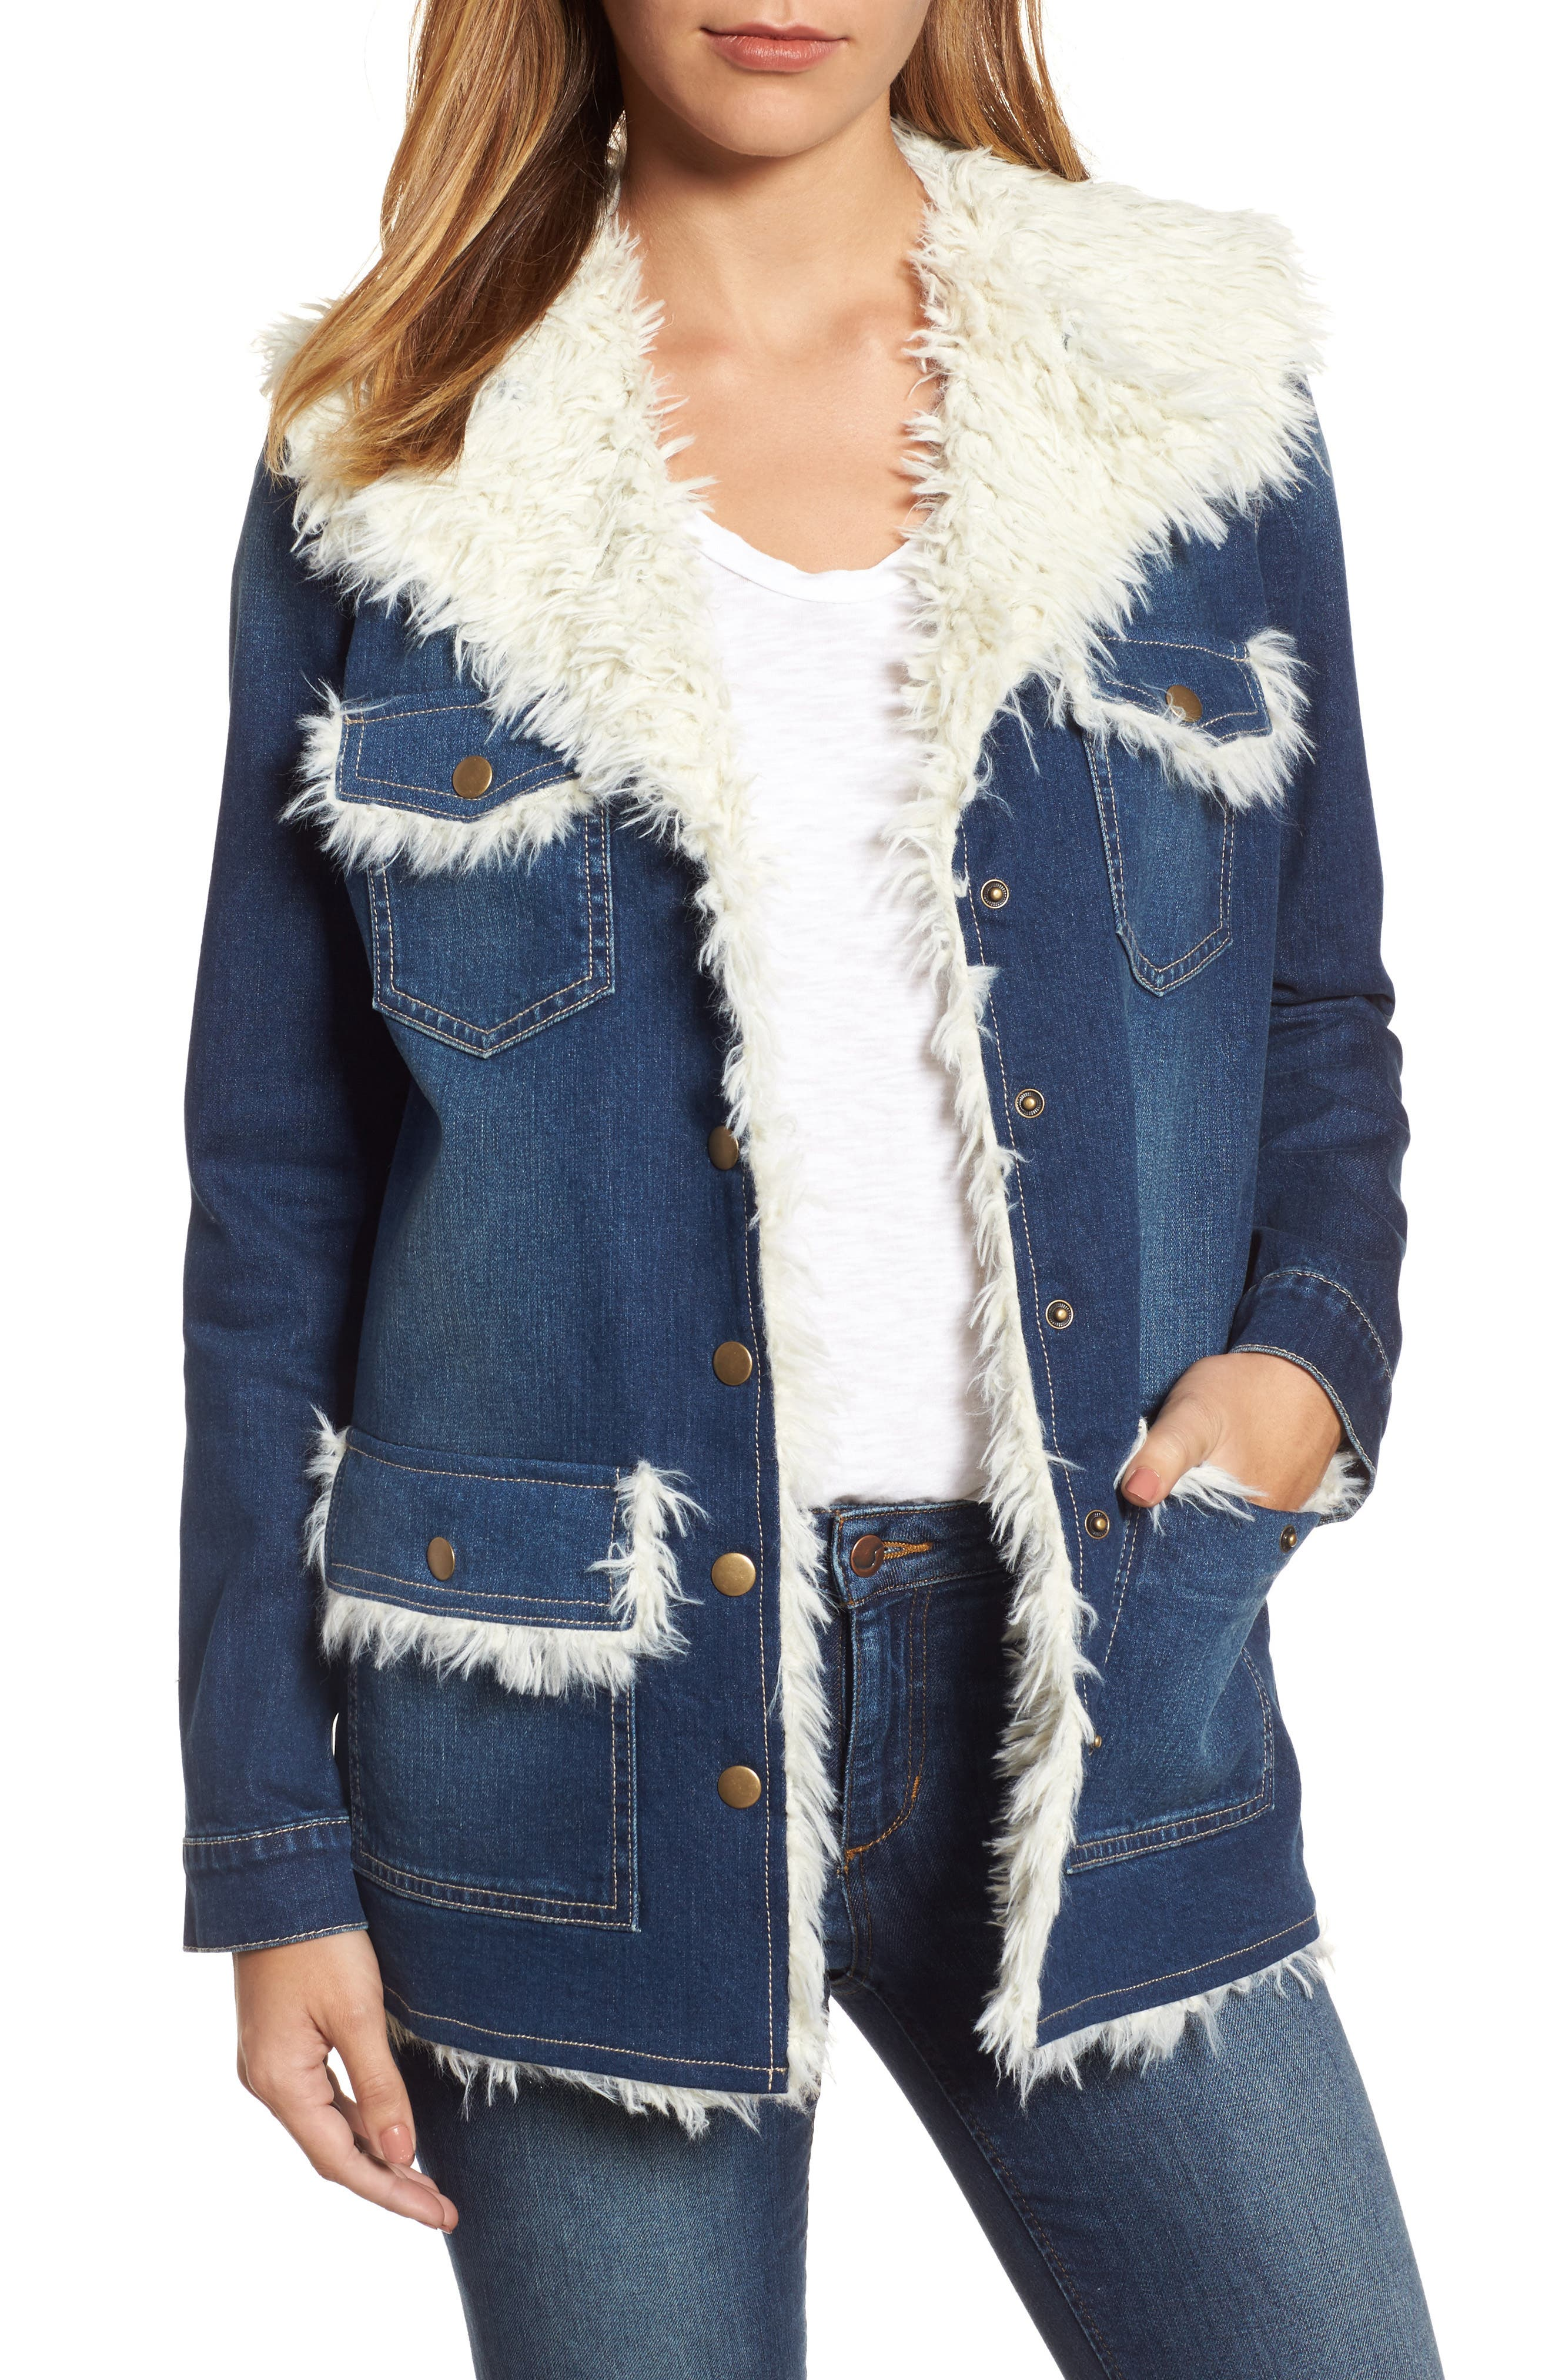 Alternate Image 1 Selected - KUT from the Kloth Faux Shearling Trim Denim Jacket